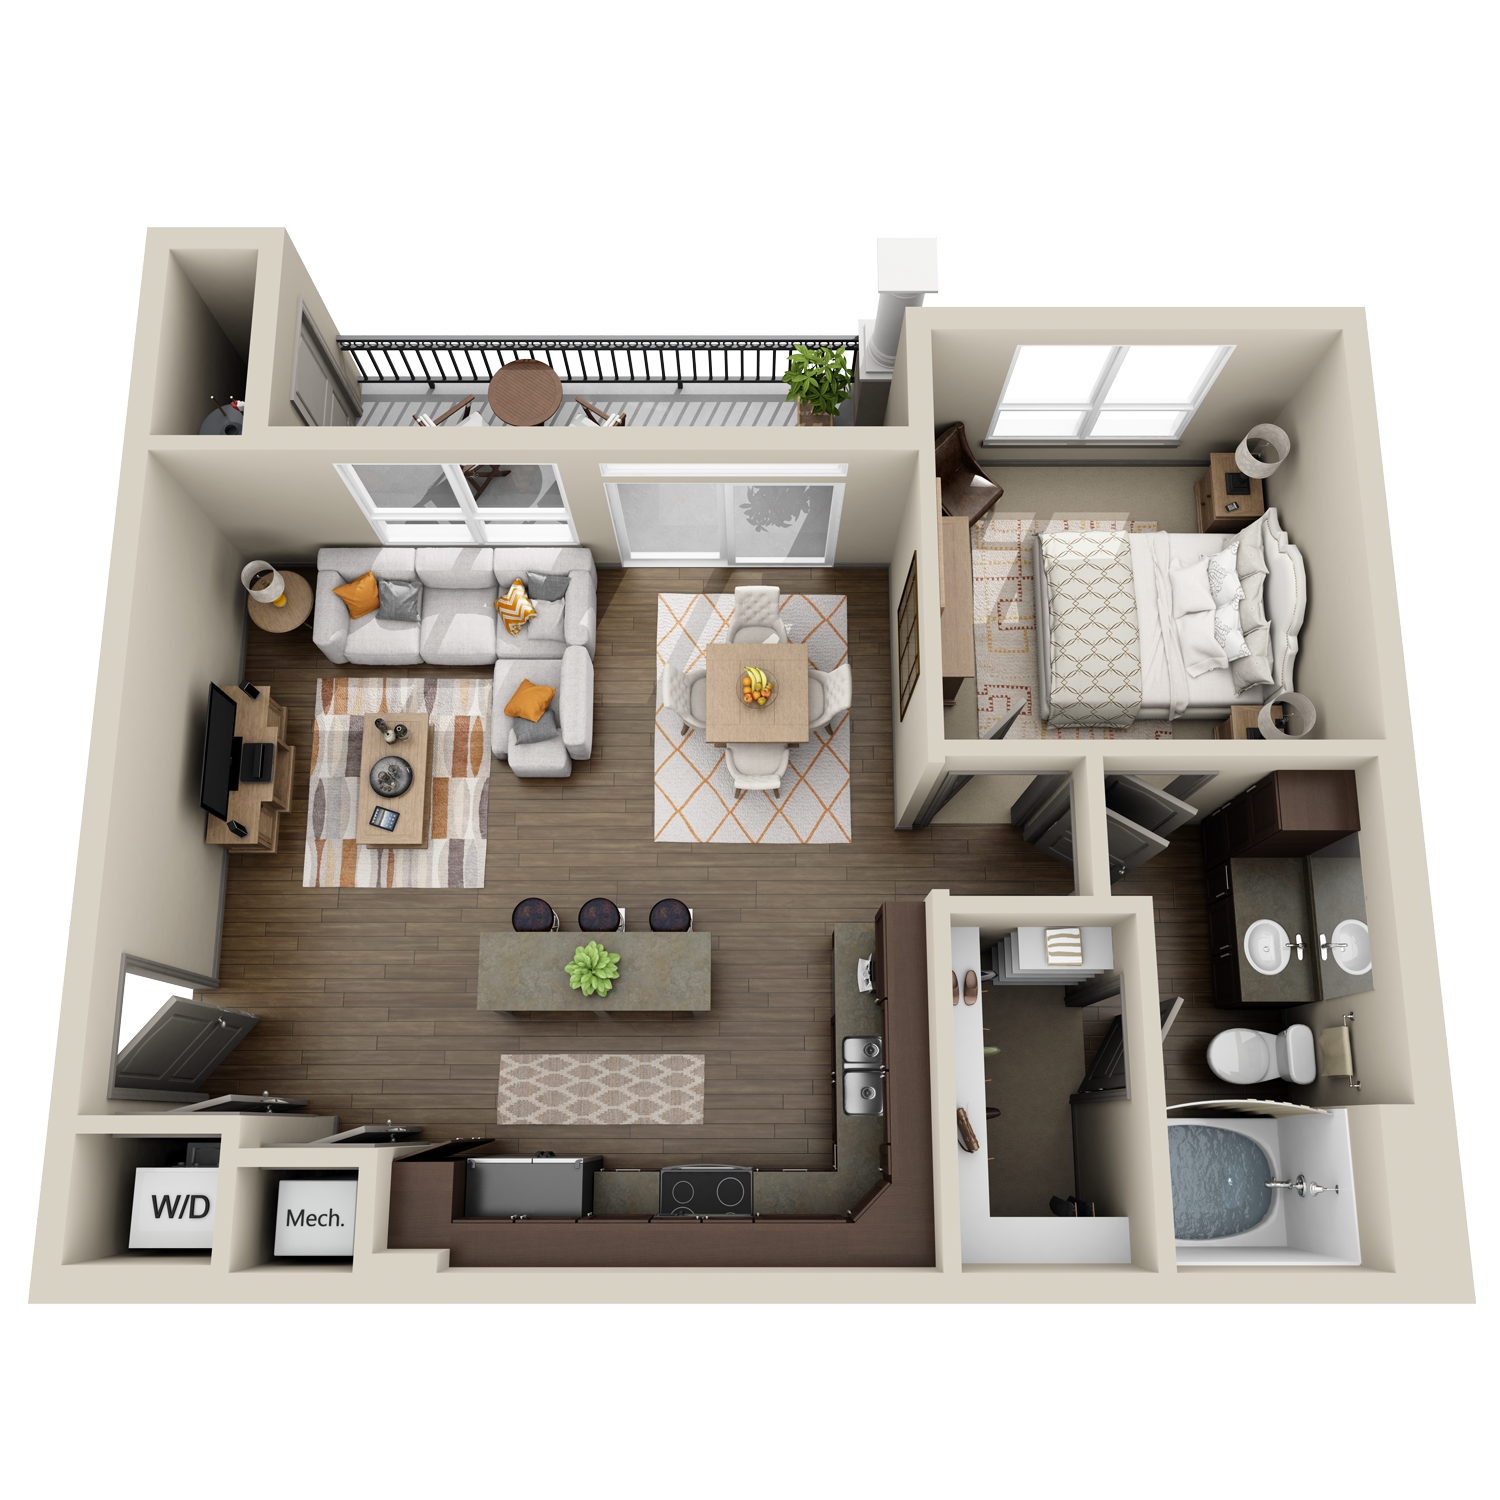 A3 floor plan featuring 1 bed and 1 bath